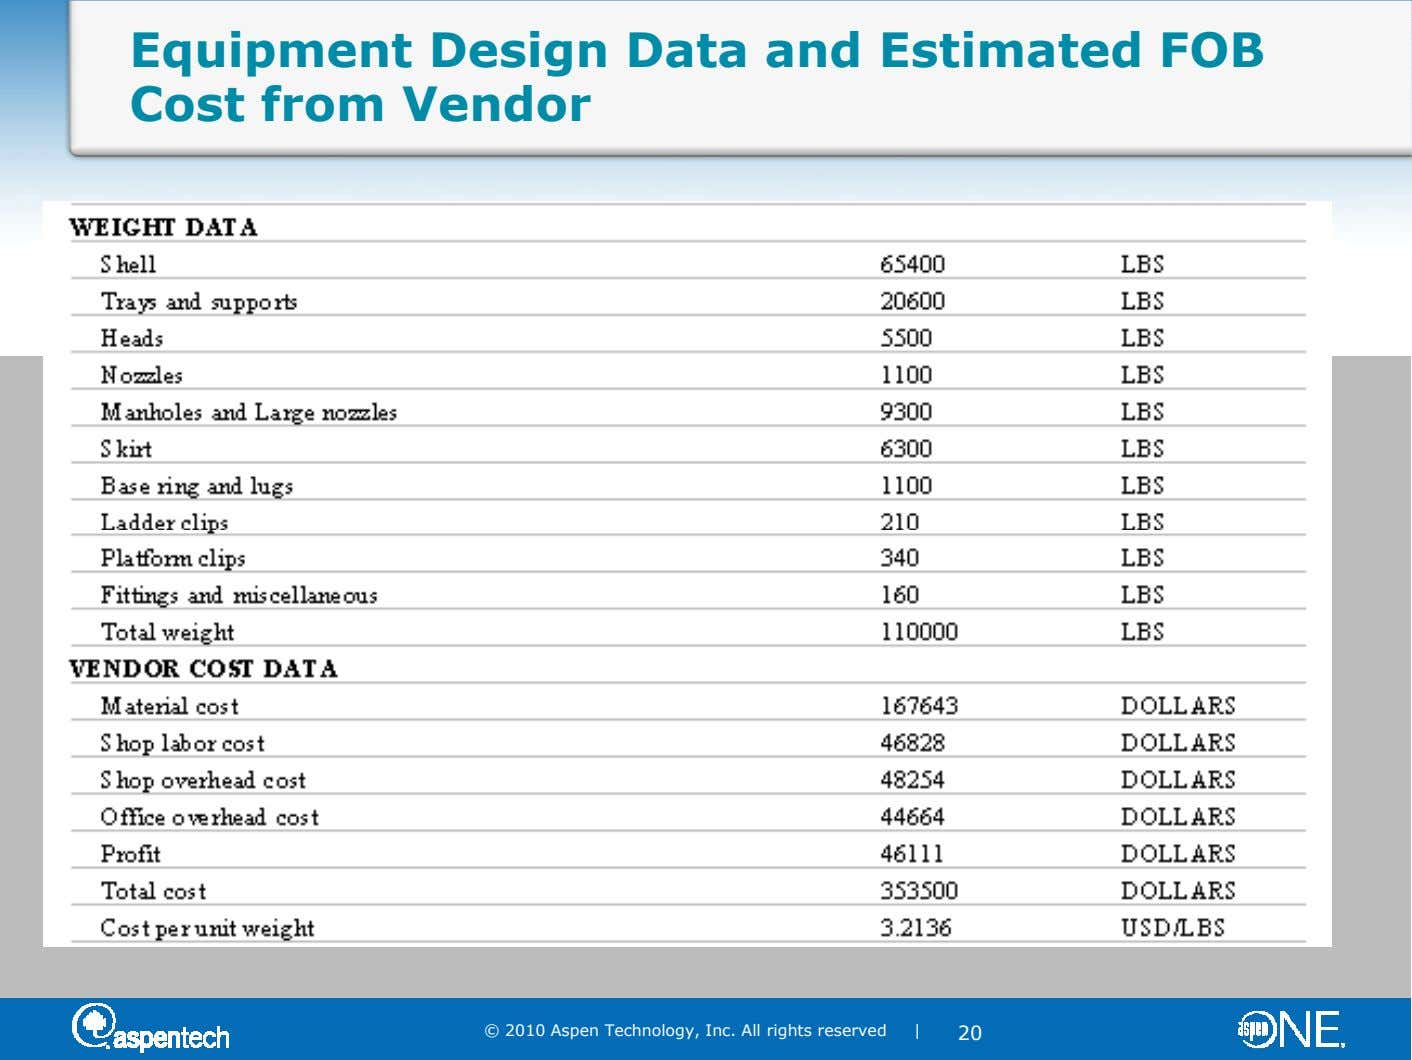 Equipment Design Data and Estimated FOB Cost from Vendor © 2010 Aspen Technology, Inc. All rights